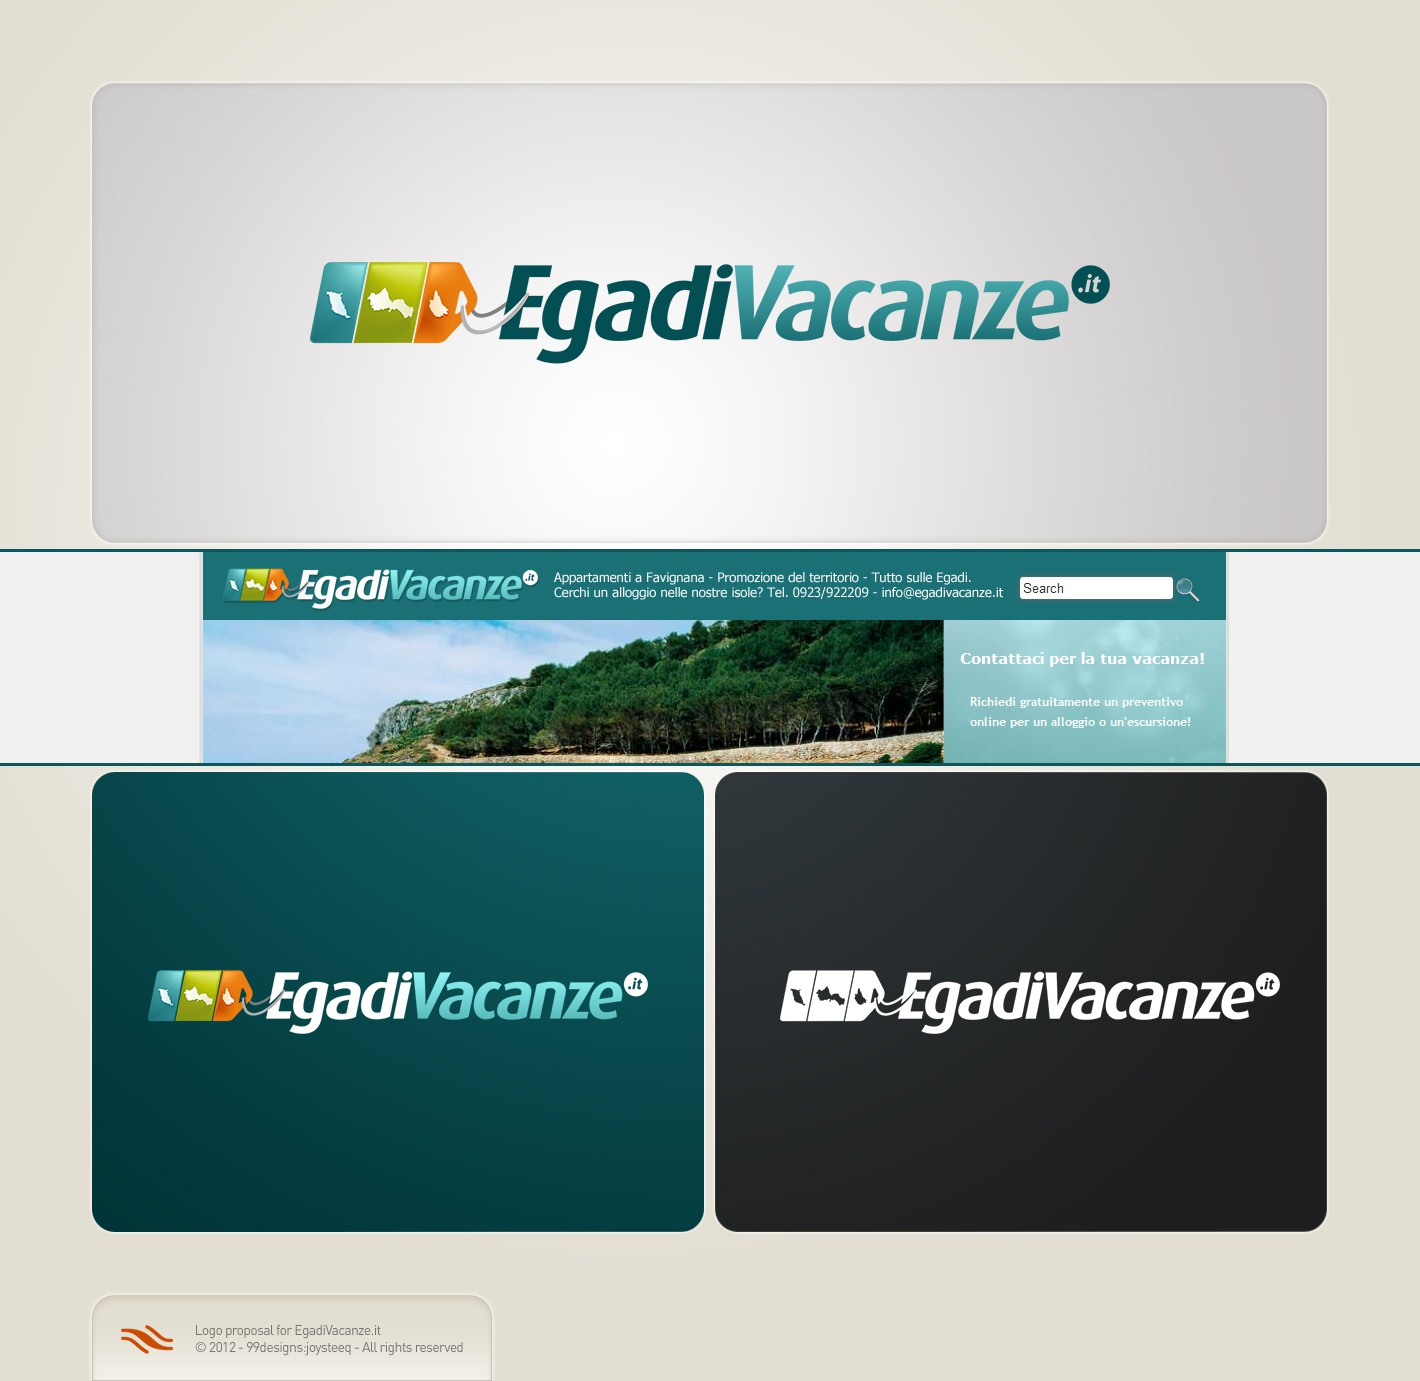 Your talent is needed! Re-design the logo for EgadiVacanze.it